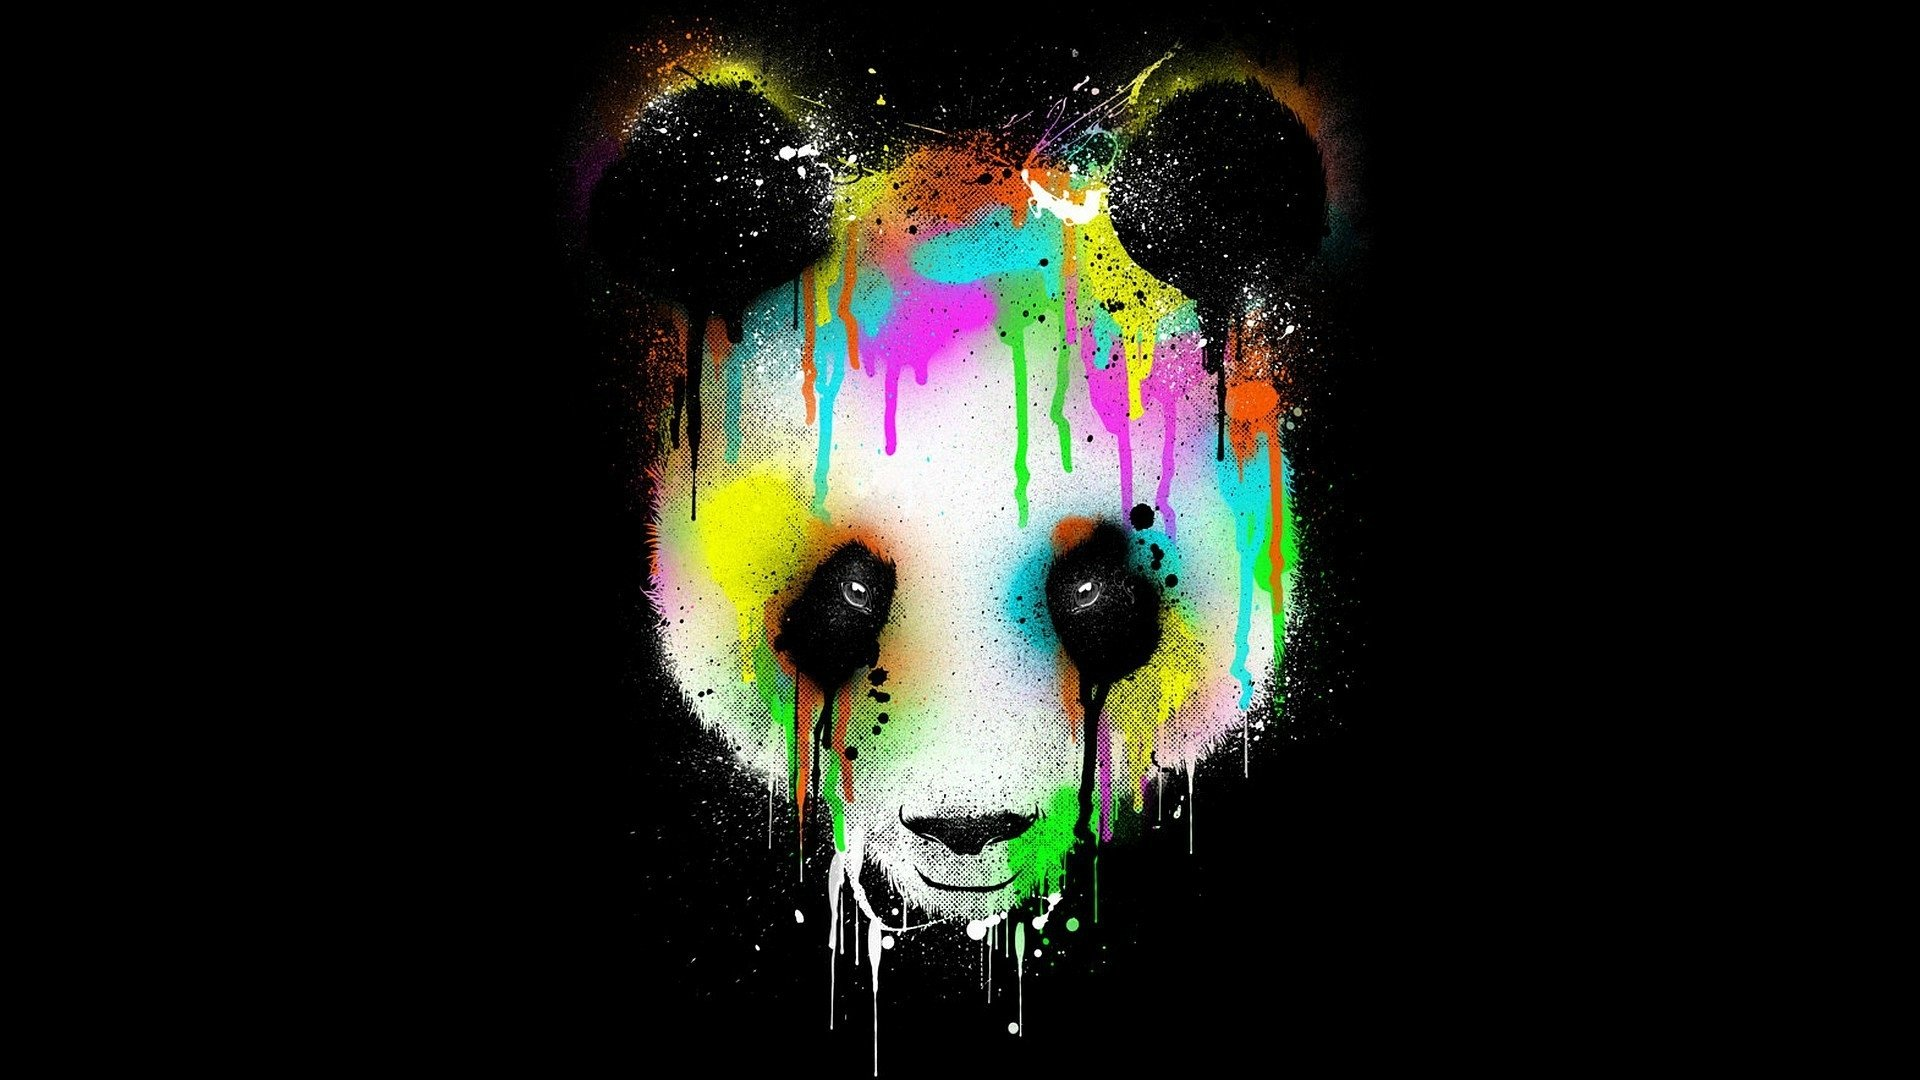 Services100 furthermore Trippy Tiger moreover 1988 2 also Panda Song Wallpaper as well Bohemian Desktop Wallpaper. on trippy elephant